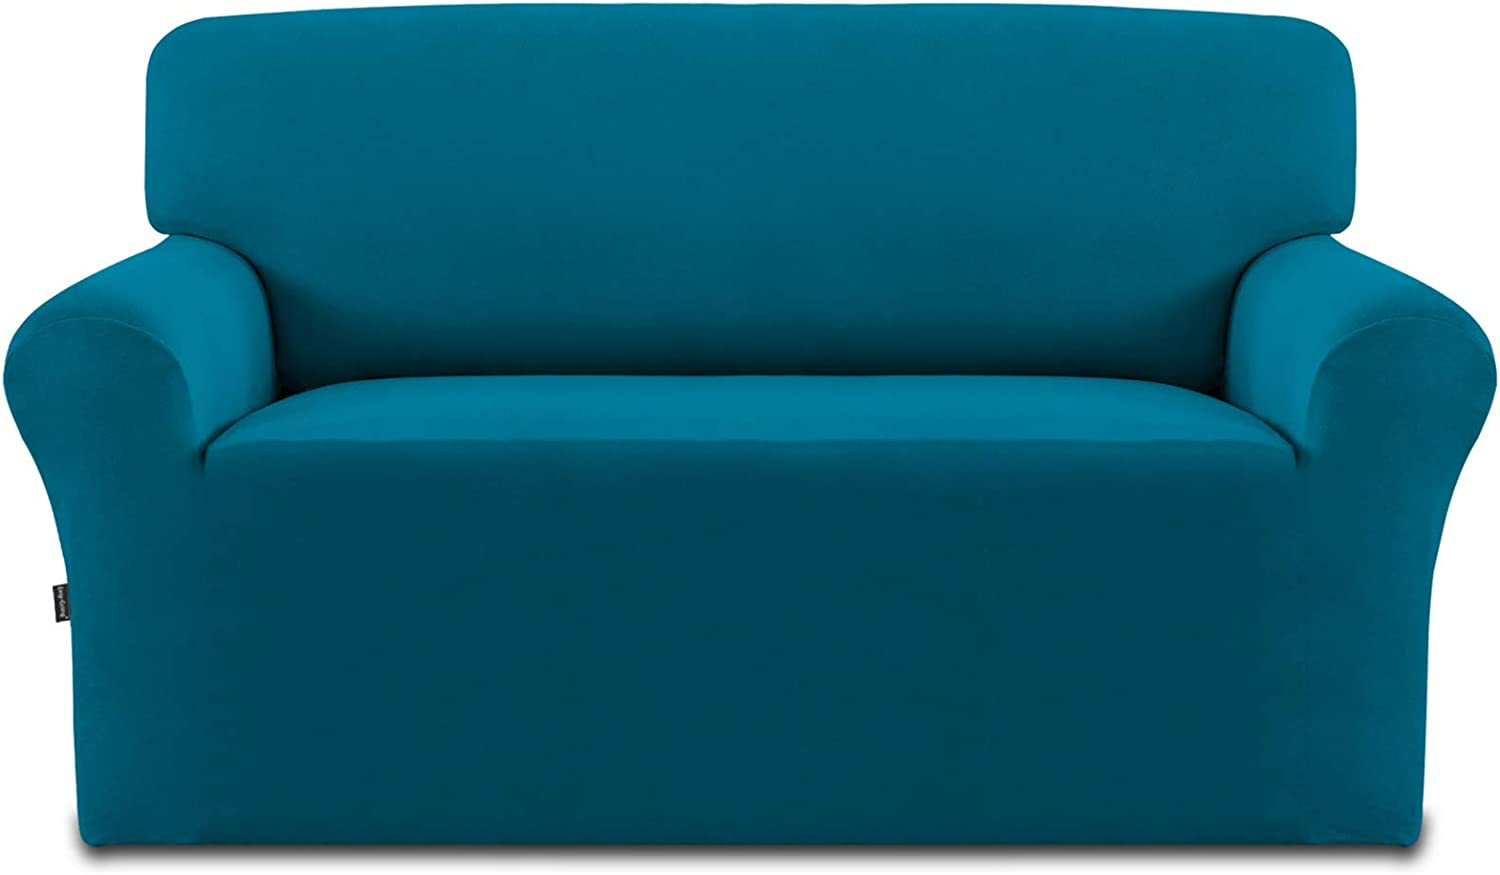 Easy-Going Fleece Stretch Sofa Slipcover – Spandex Non-Slip Soft Couch Sofa Cover, Washable Furniture Protector with Anti-Skid Foam and Elastic Bottom for Kids, Pets(Loveseat,Peacock Blue)